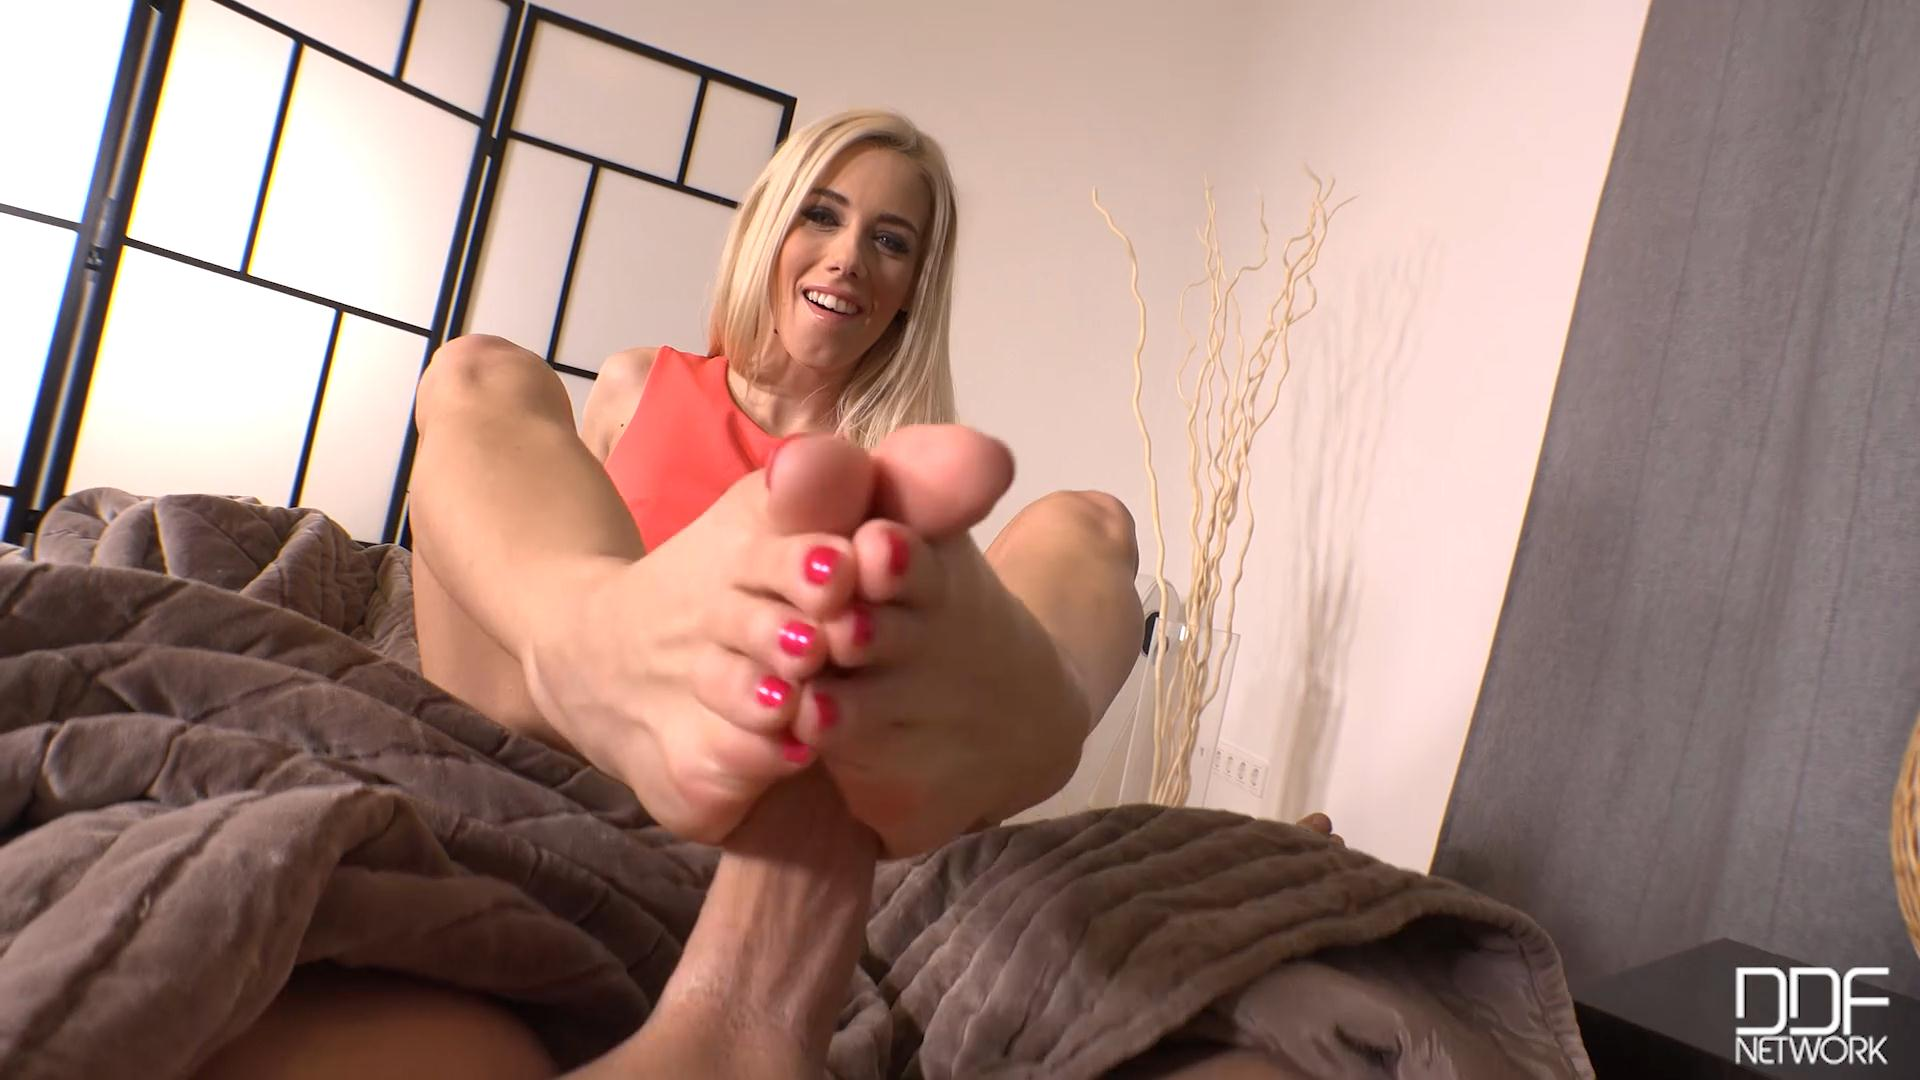 Nesty Hd Videos Porn footjob heaven: blonde wanks his cock with her sexy feet